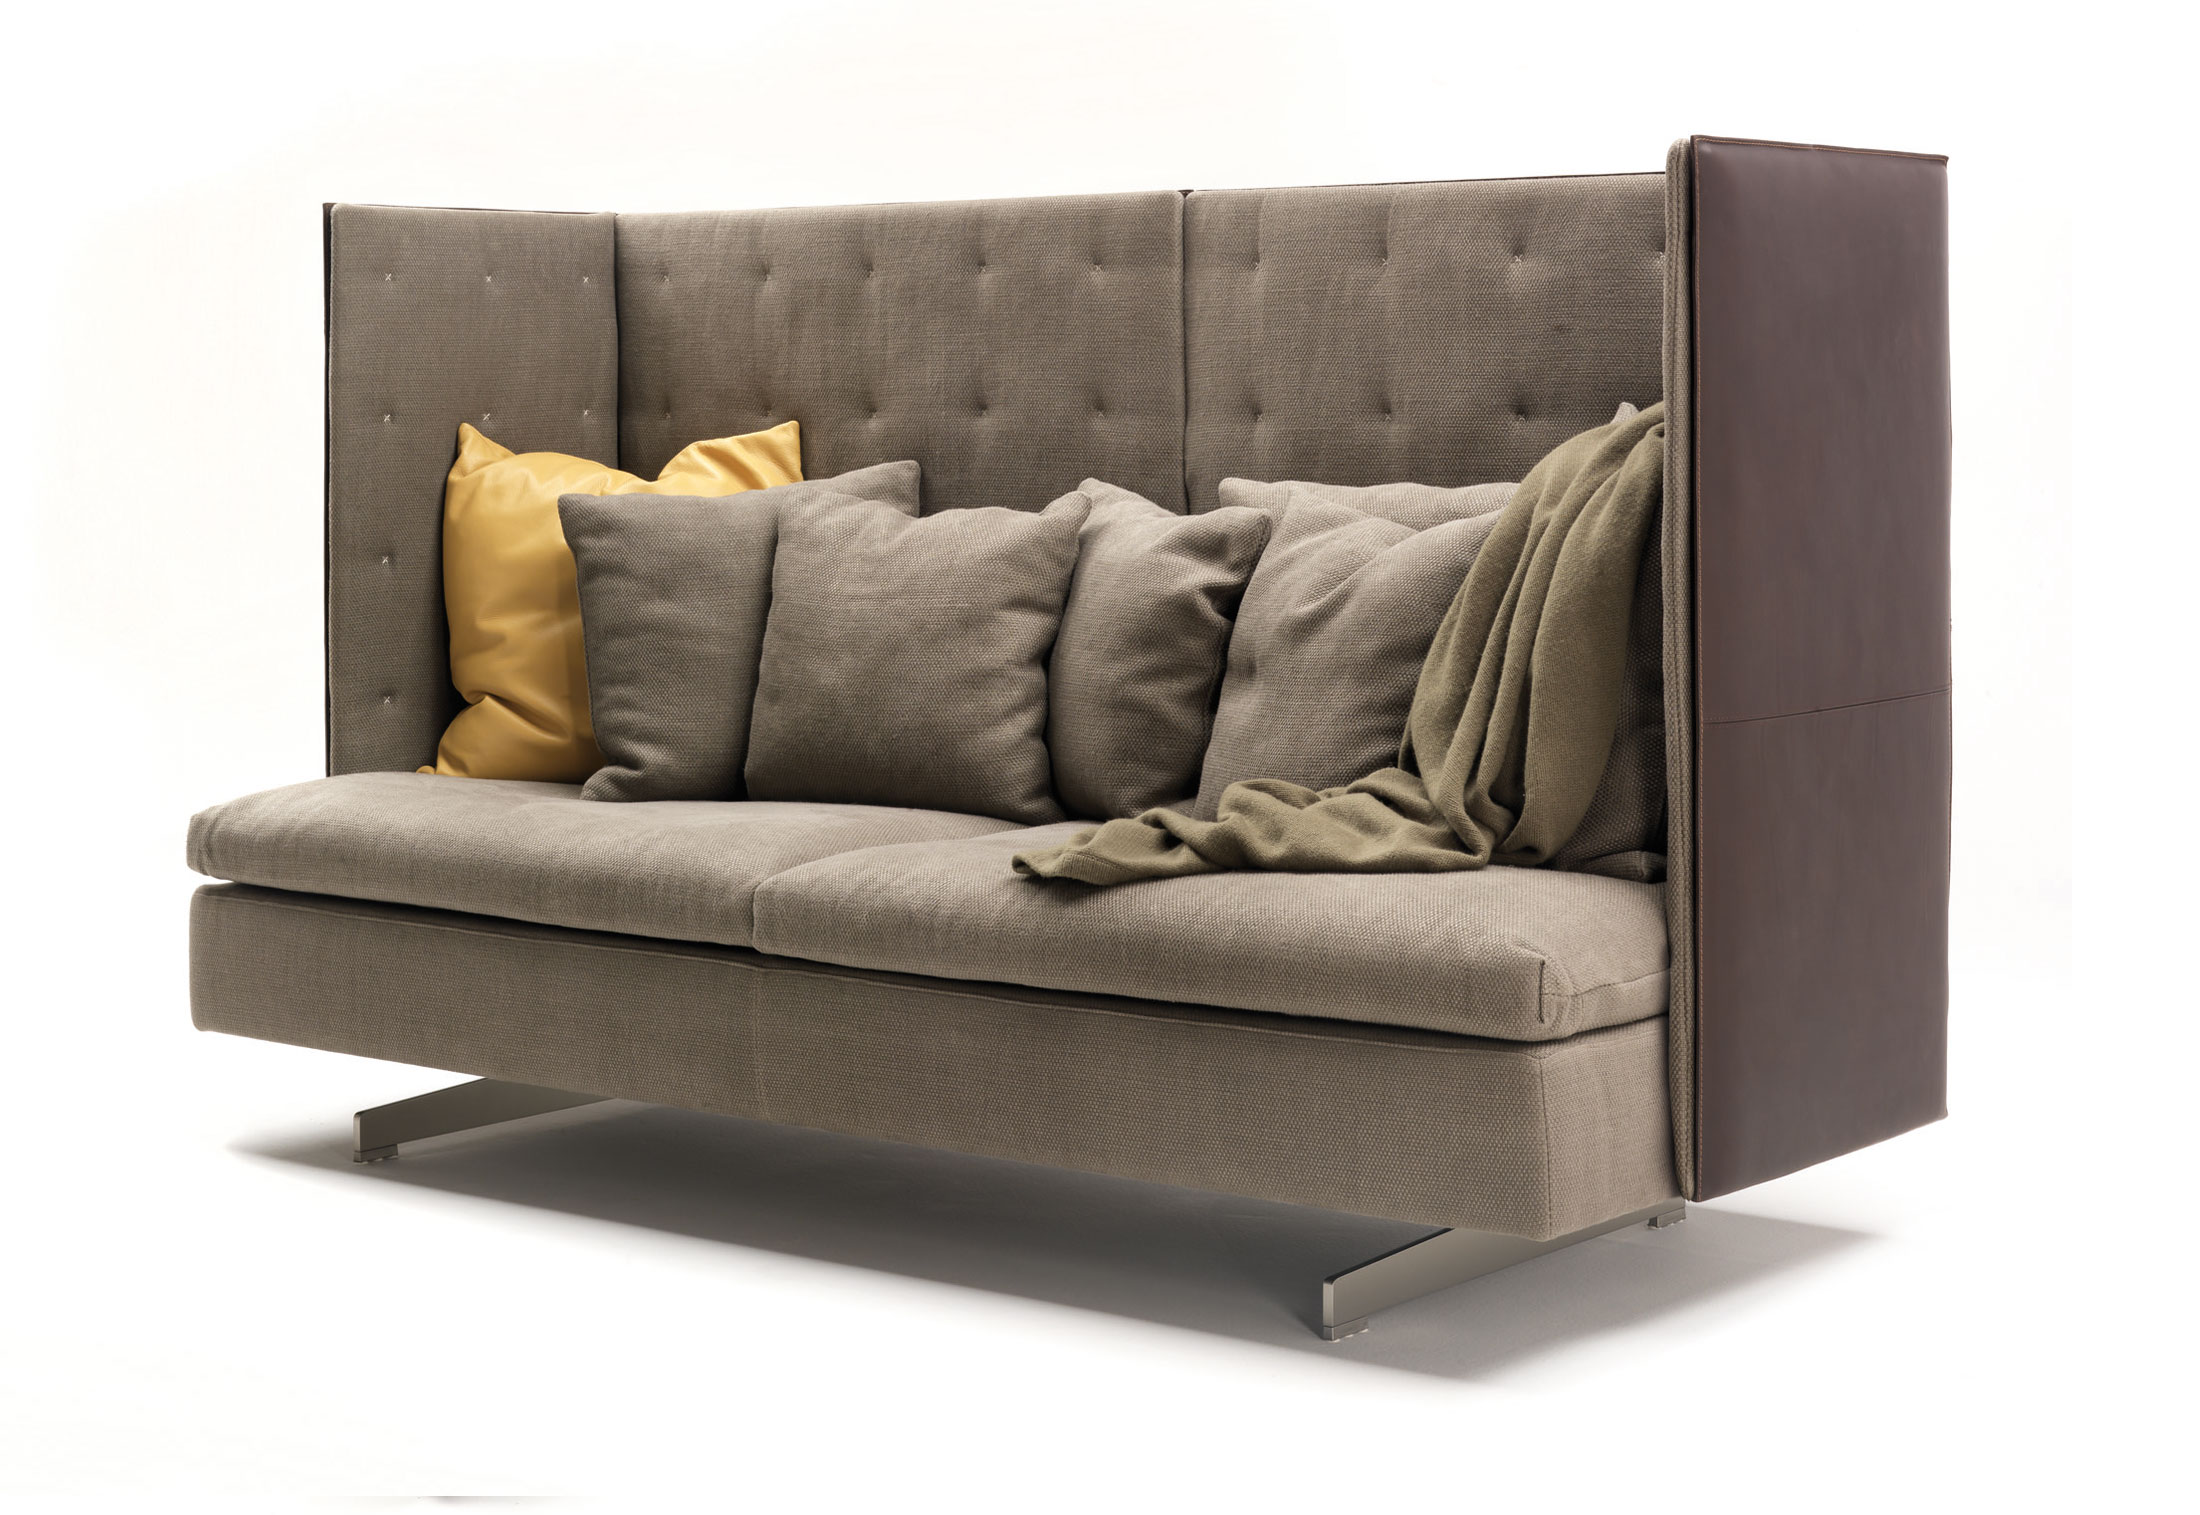 Grantorino High-back Sofa By Poltrona Frau